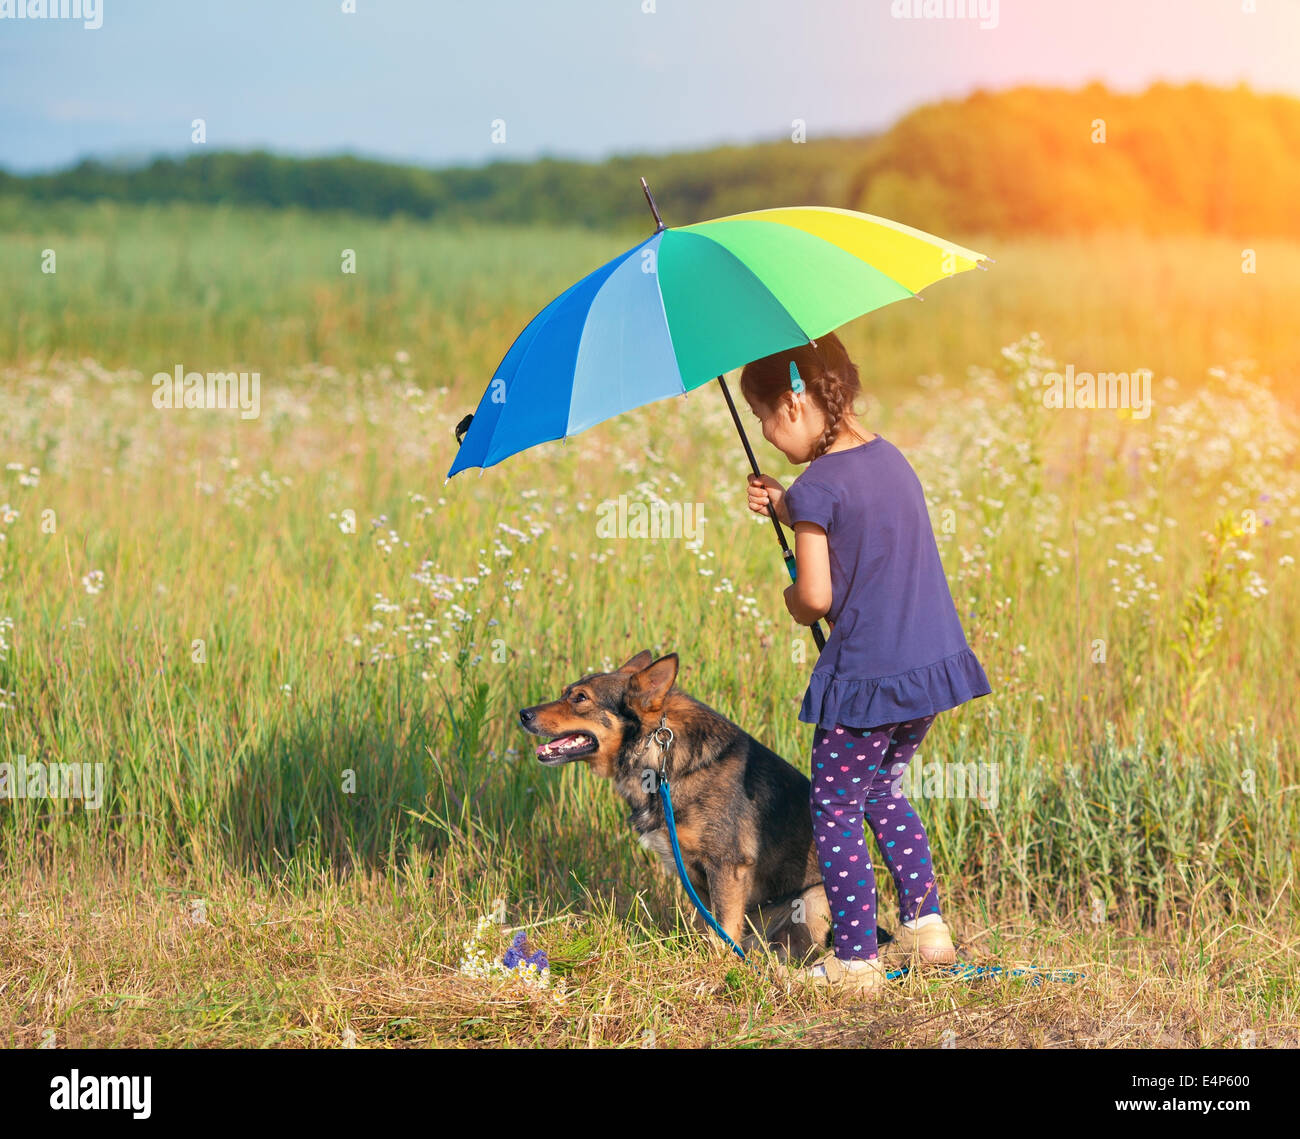 Little girl with dog under umbrella in sunny weather - Stock Image